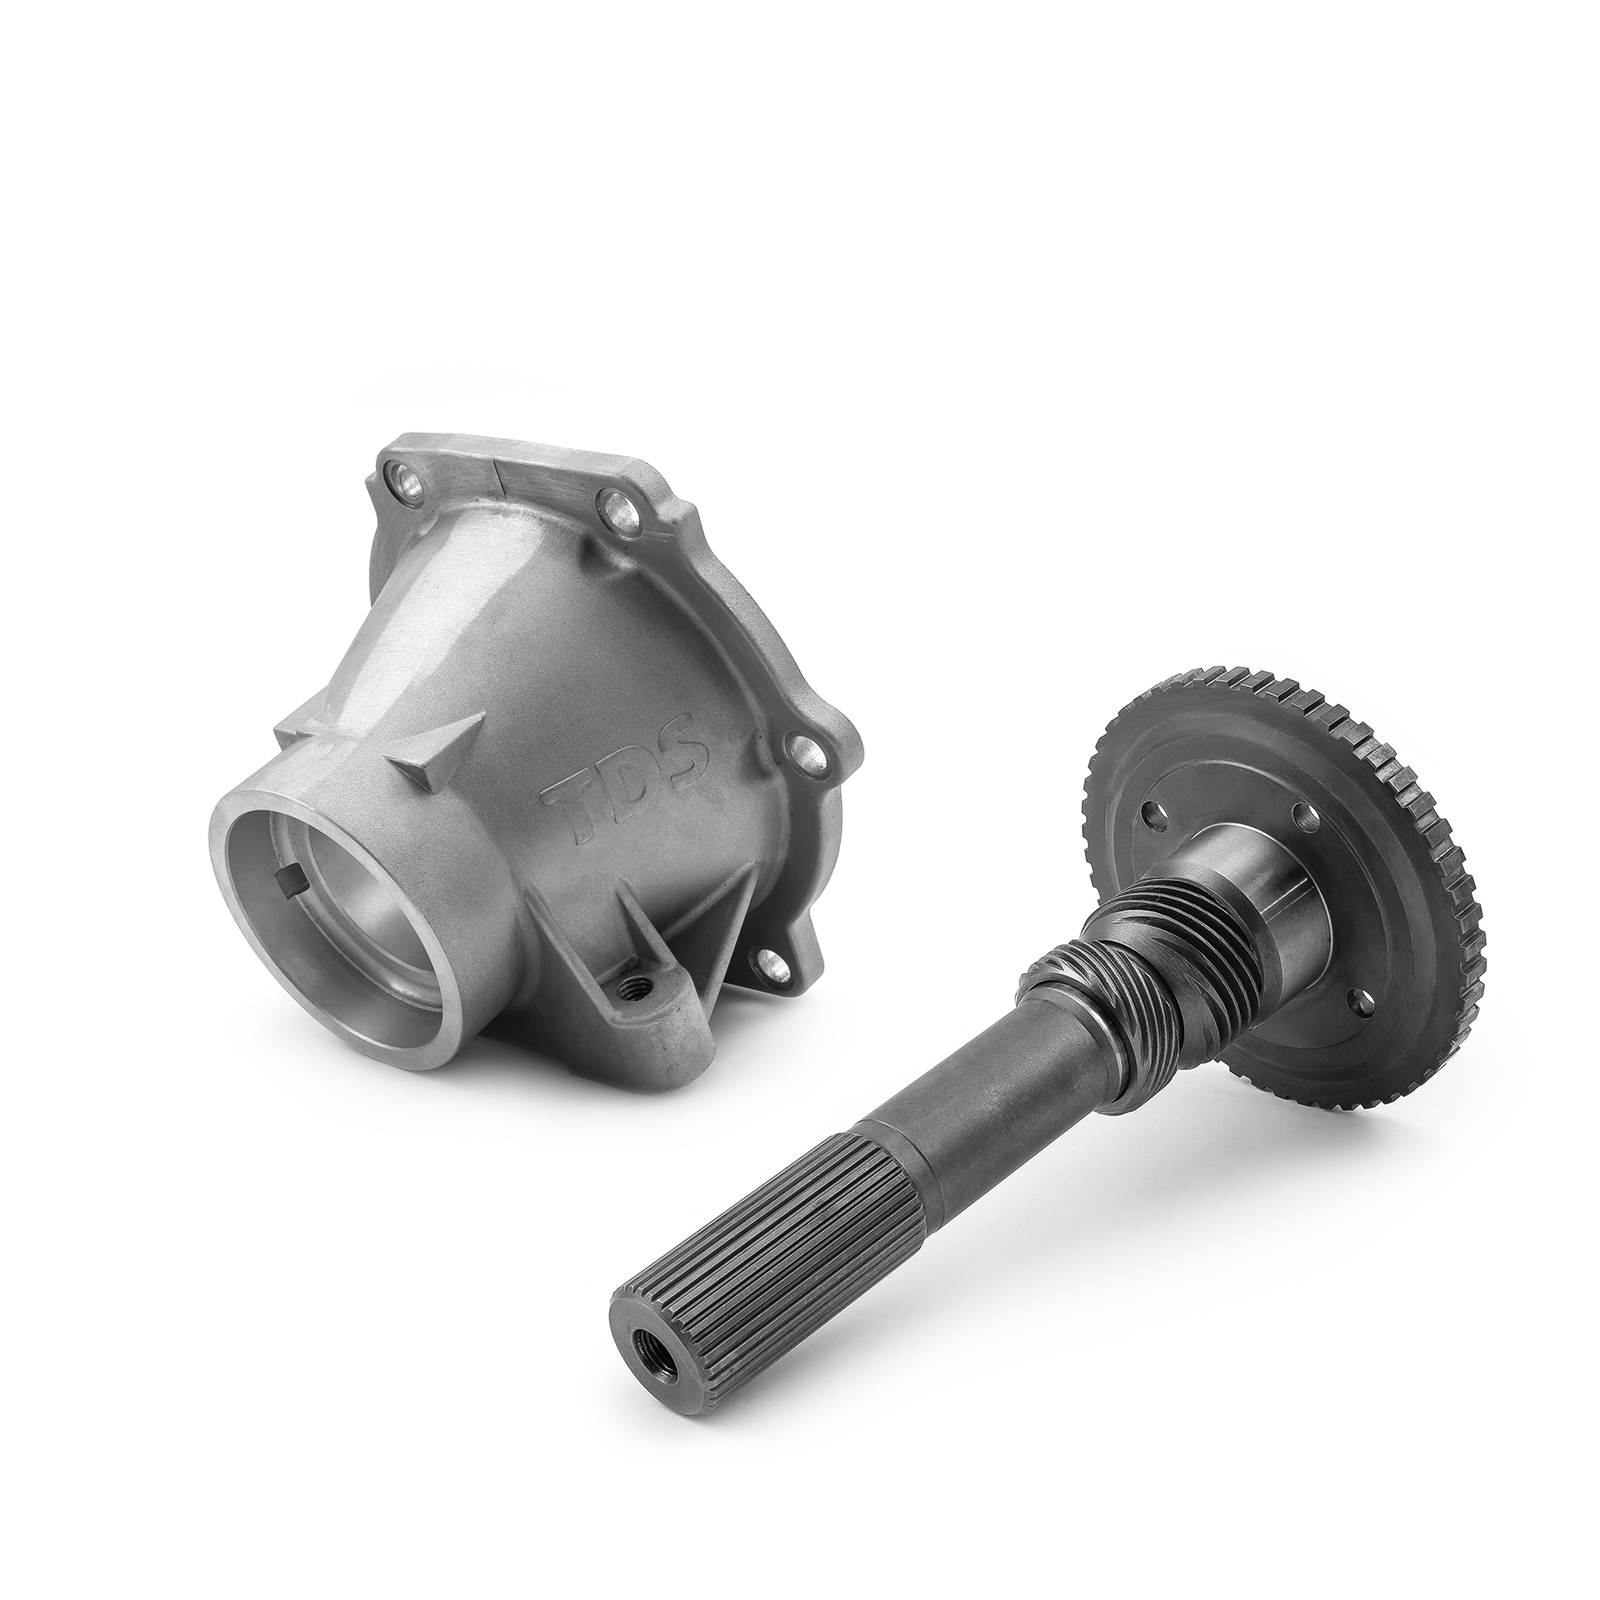 PCE® PCE598.1007 Turbo 400 TH400 Standard Length Output Shaft and Tail Housing Combo